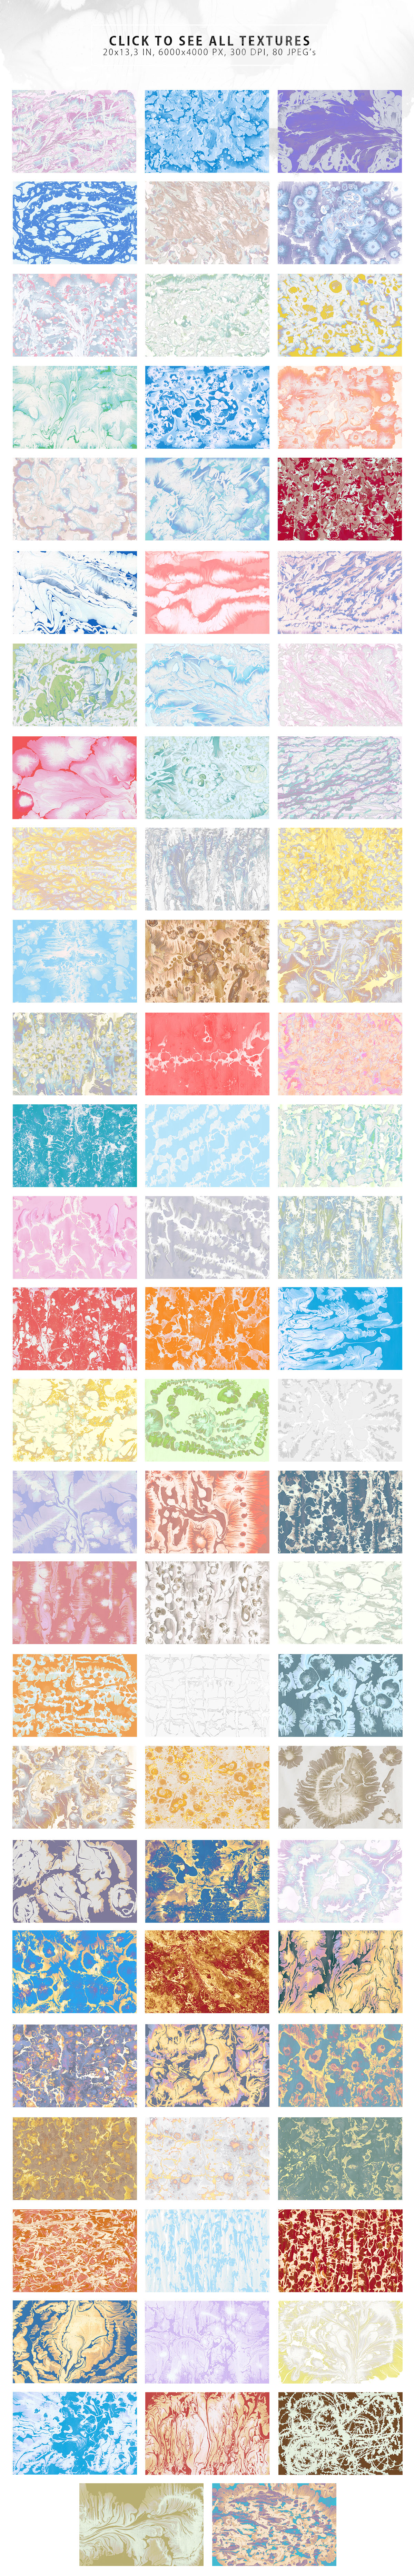 Wet Paint Textures by ArtistMef on creativemarket Paint